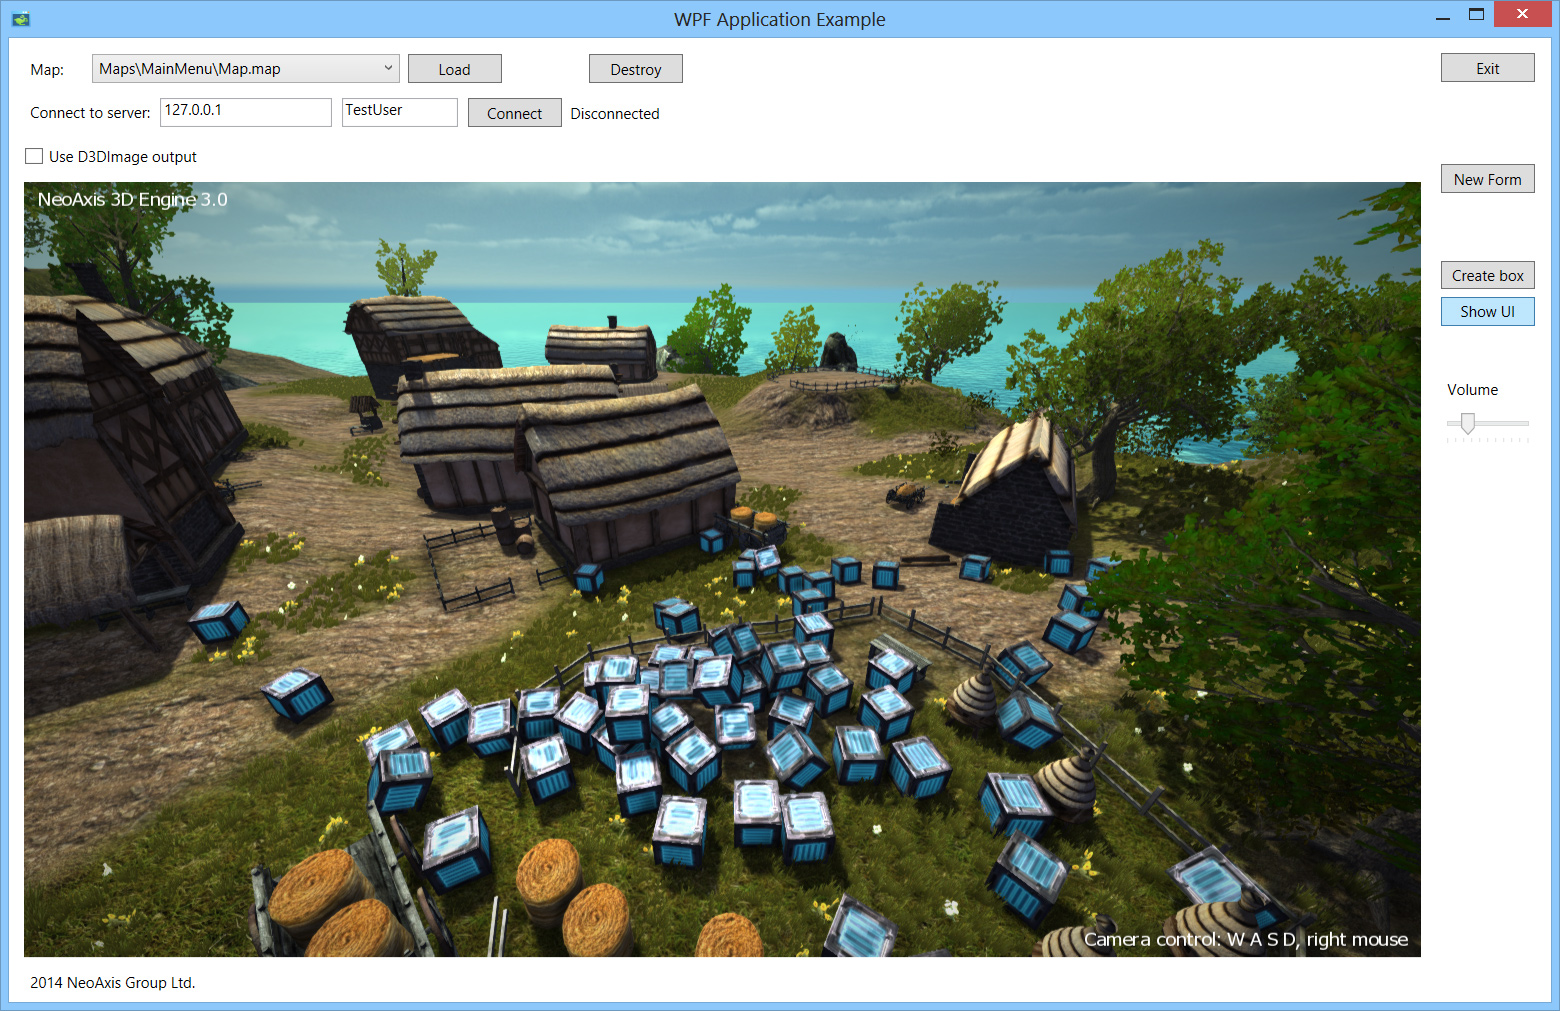 NeoAxis 3D Engine 3.5 Released | NeoAxis 3D Engine